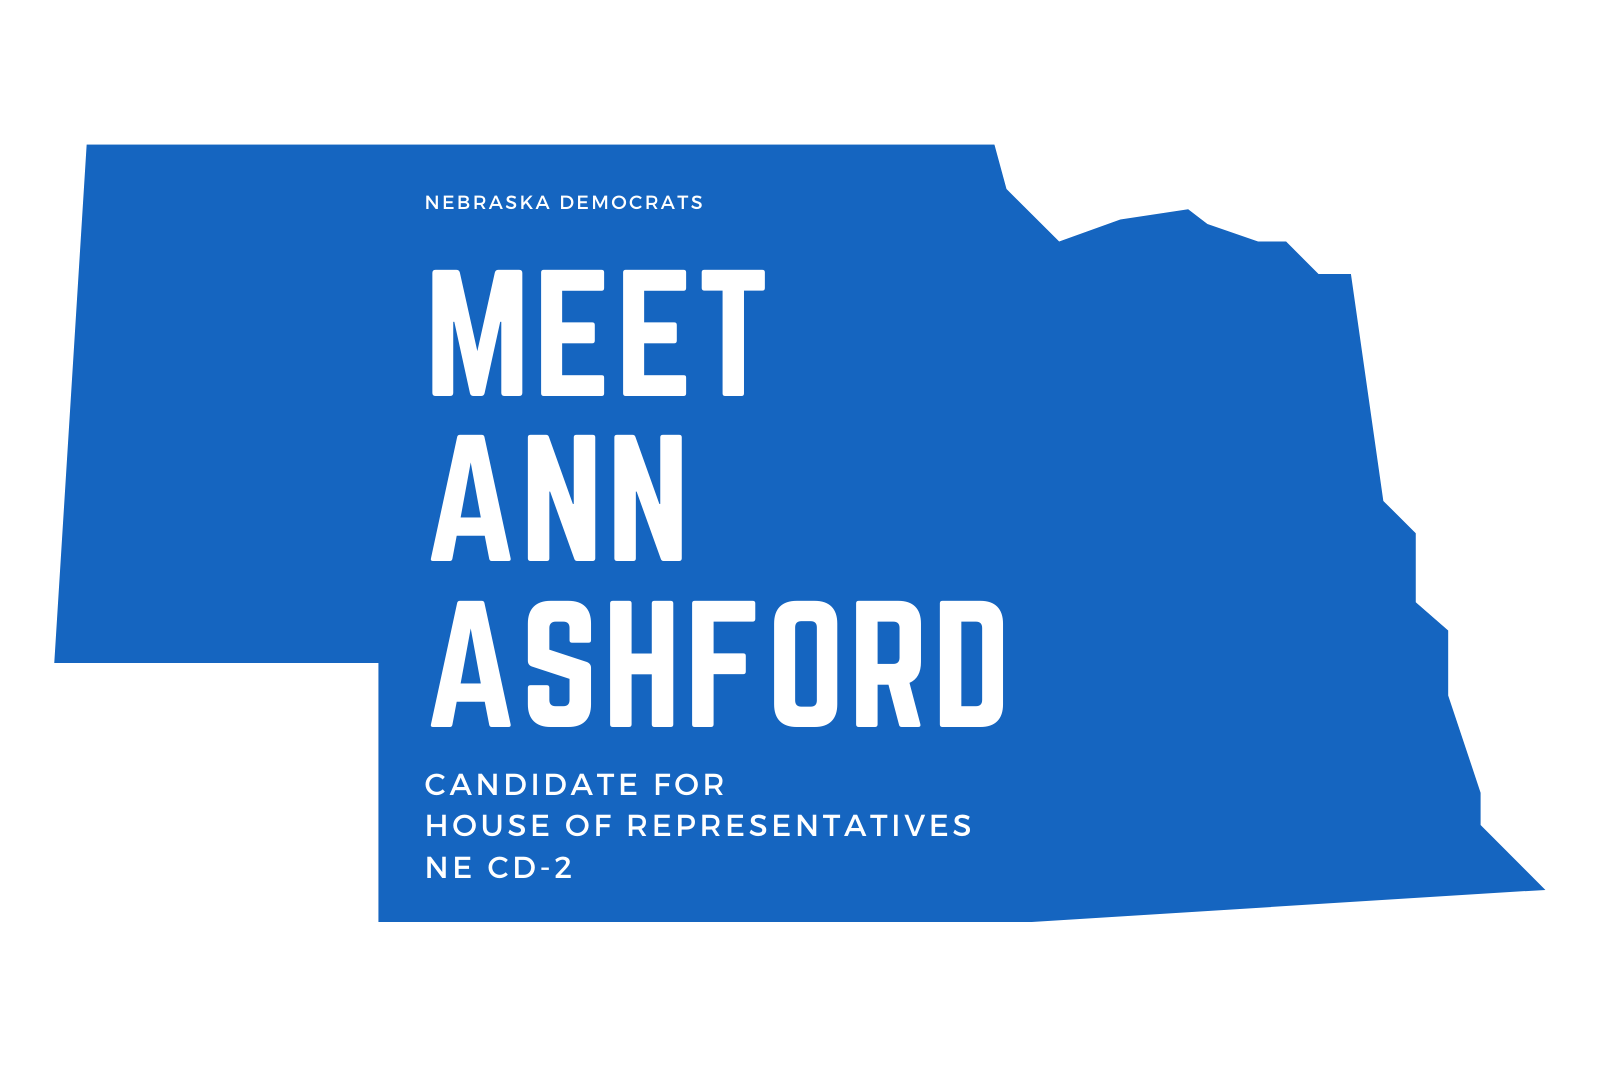 Meet Ann Ashford, Candidate for Congress NE CD-2